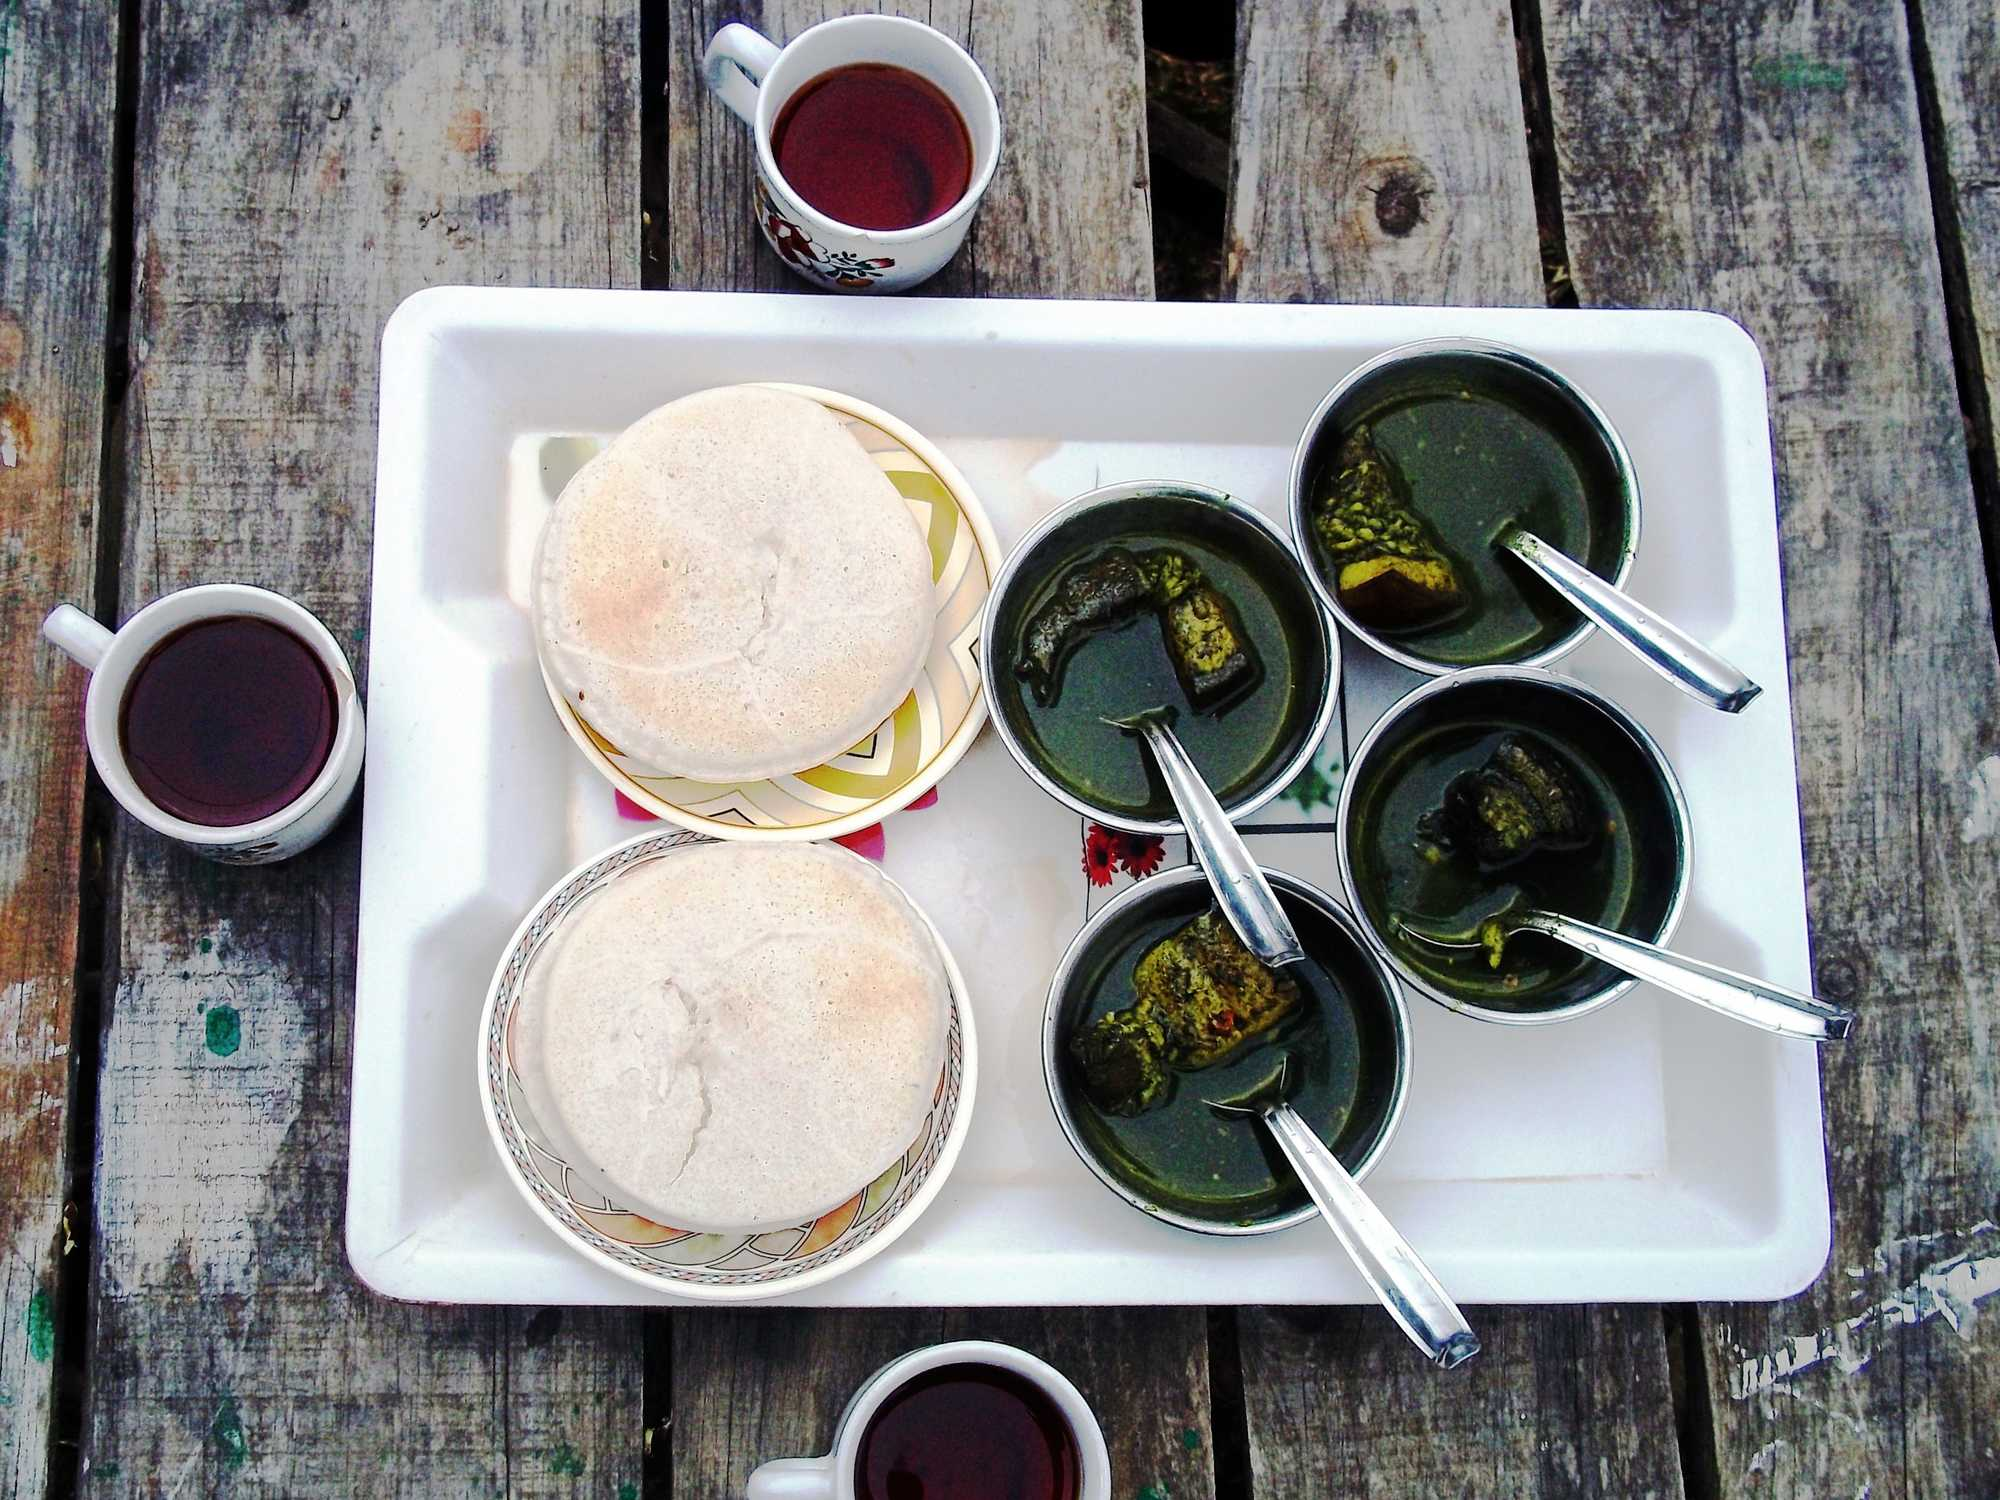 What is a must try pork delicacy from Meghalaya, northeast India?